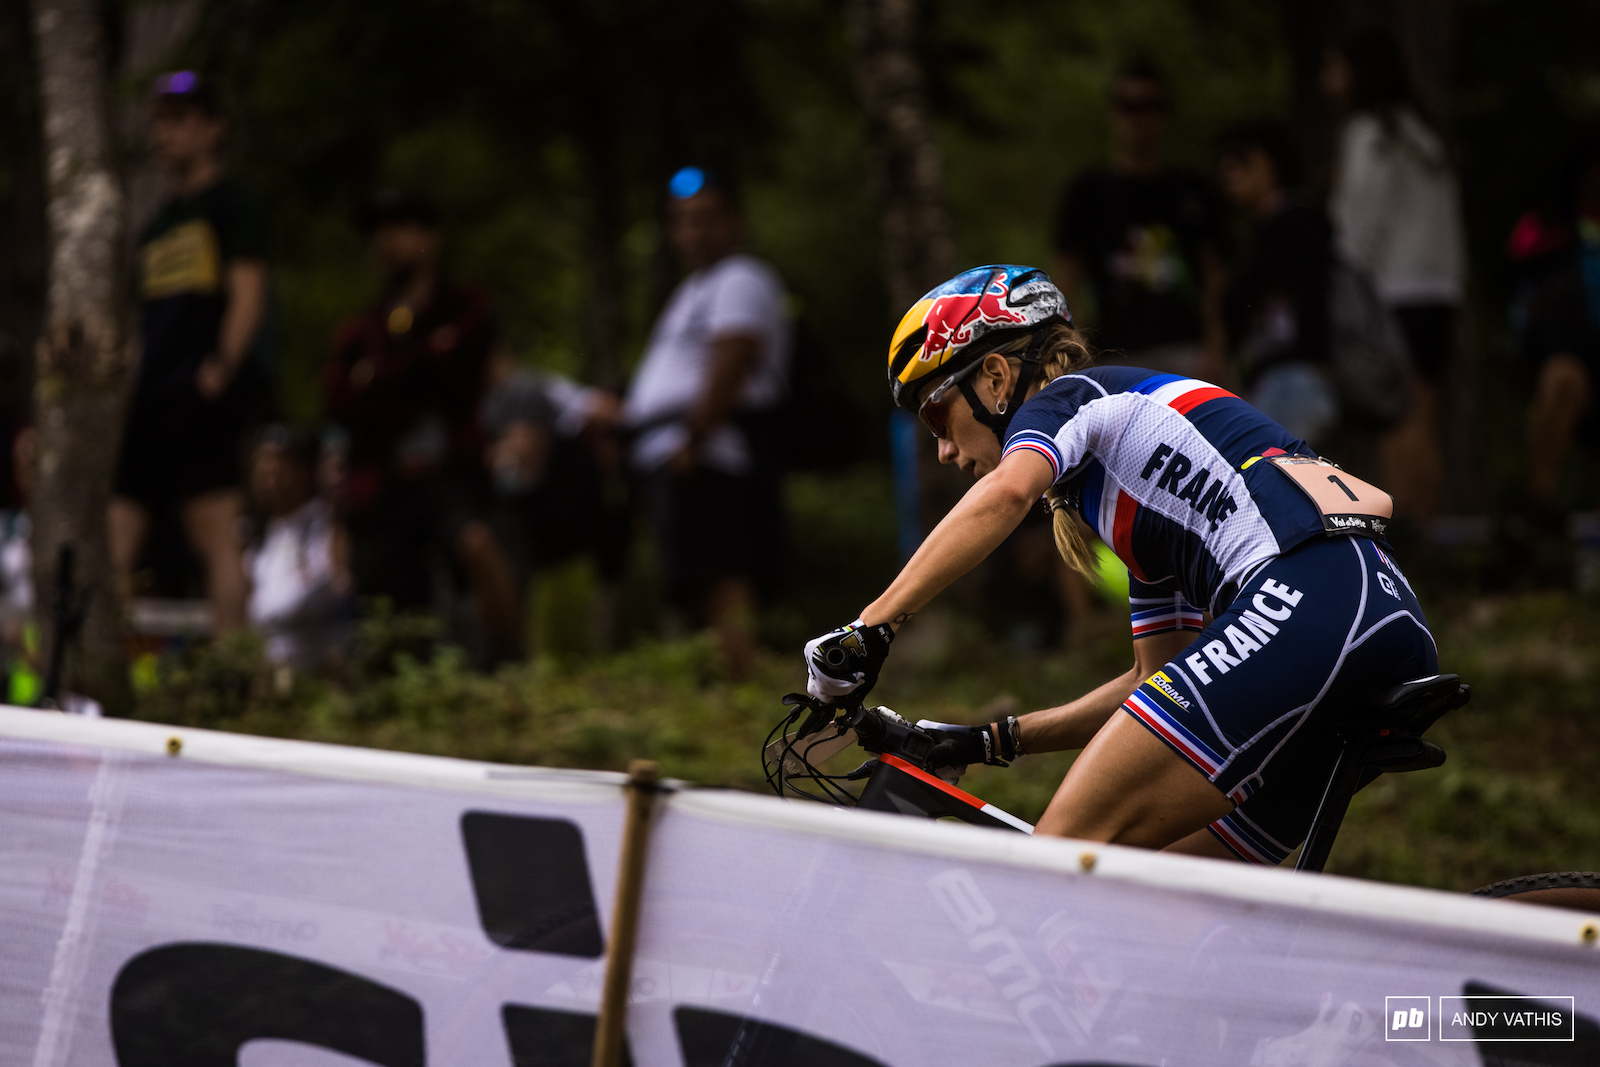 Pauline Ferrand Prevot put down the watts in the first few laps and nearly got away with it.